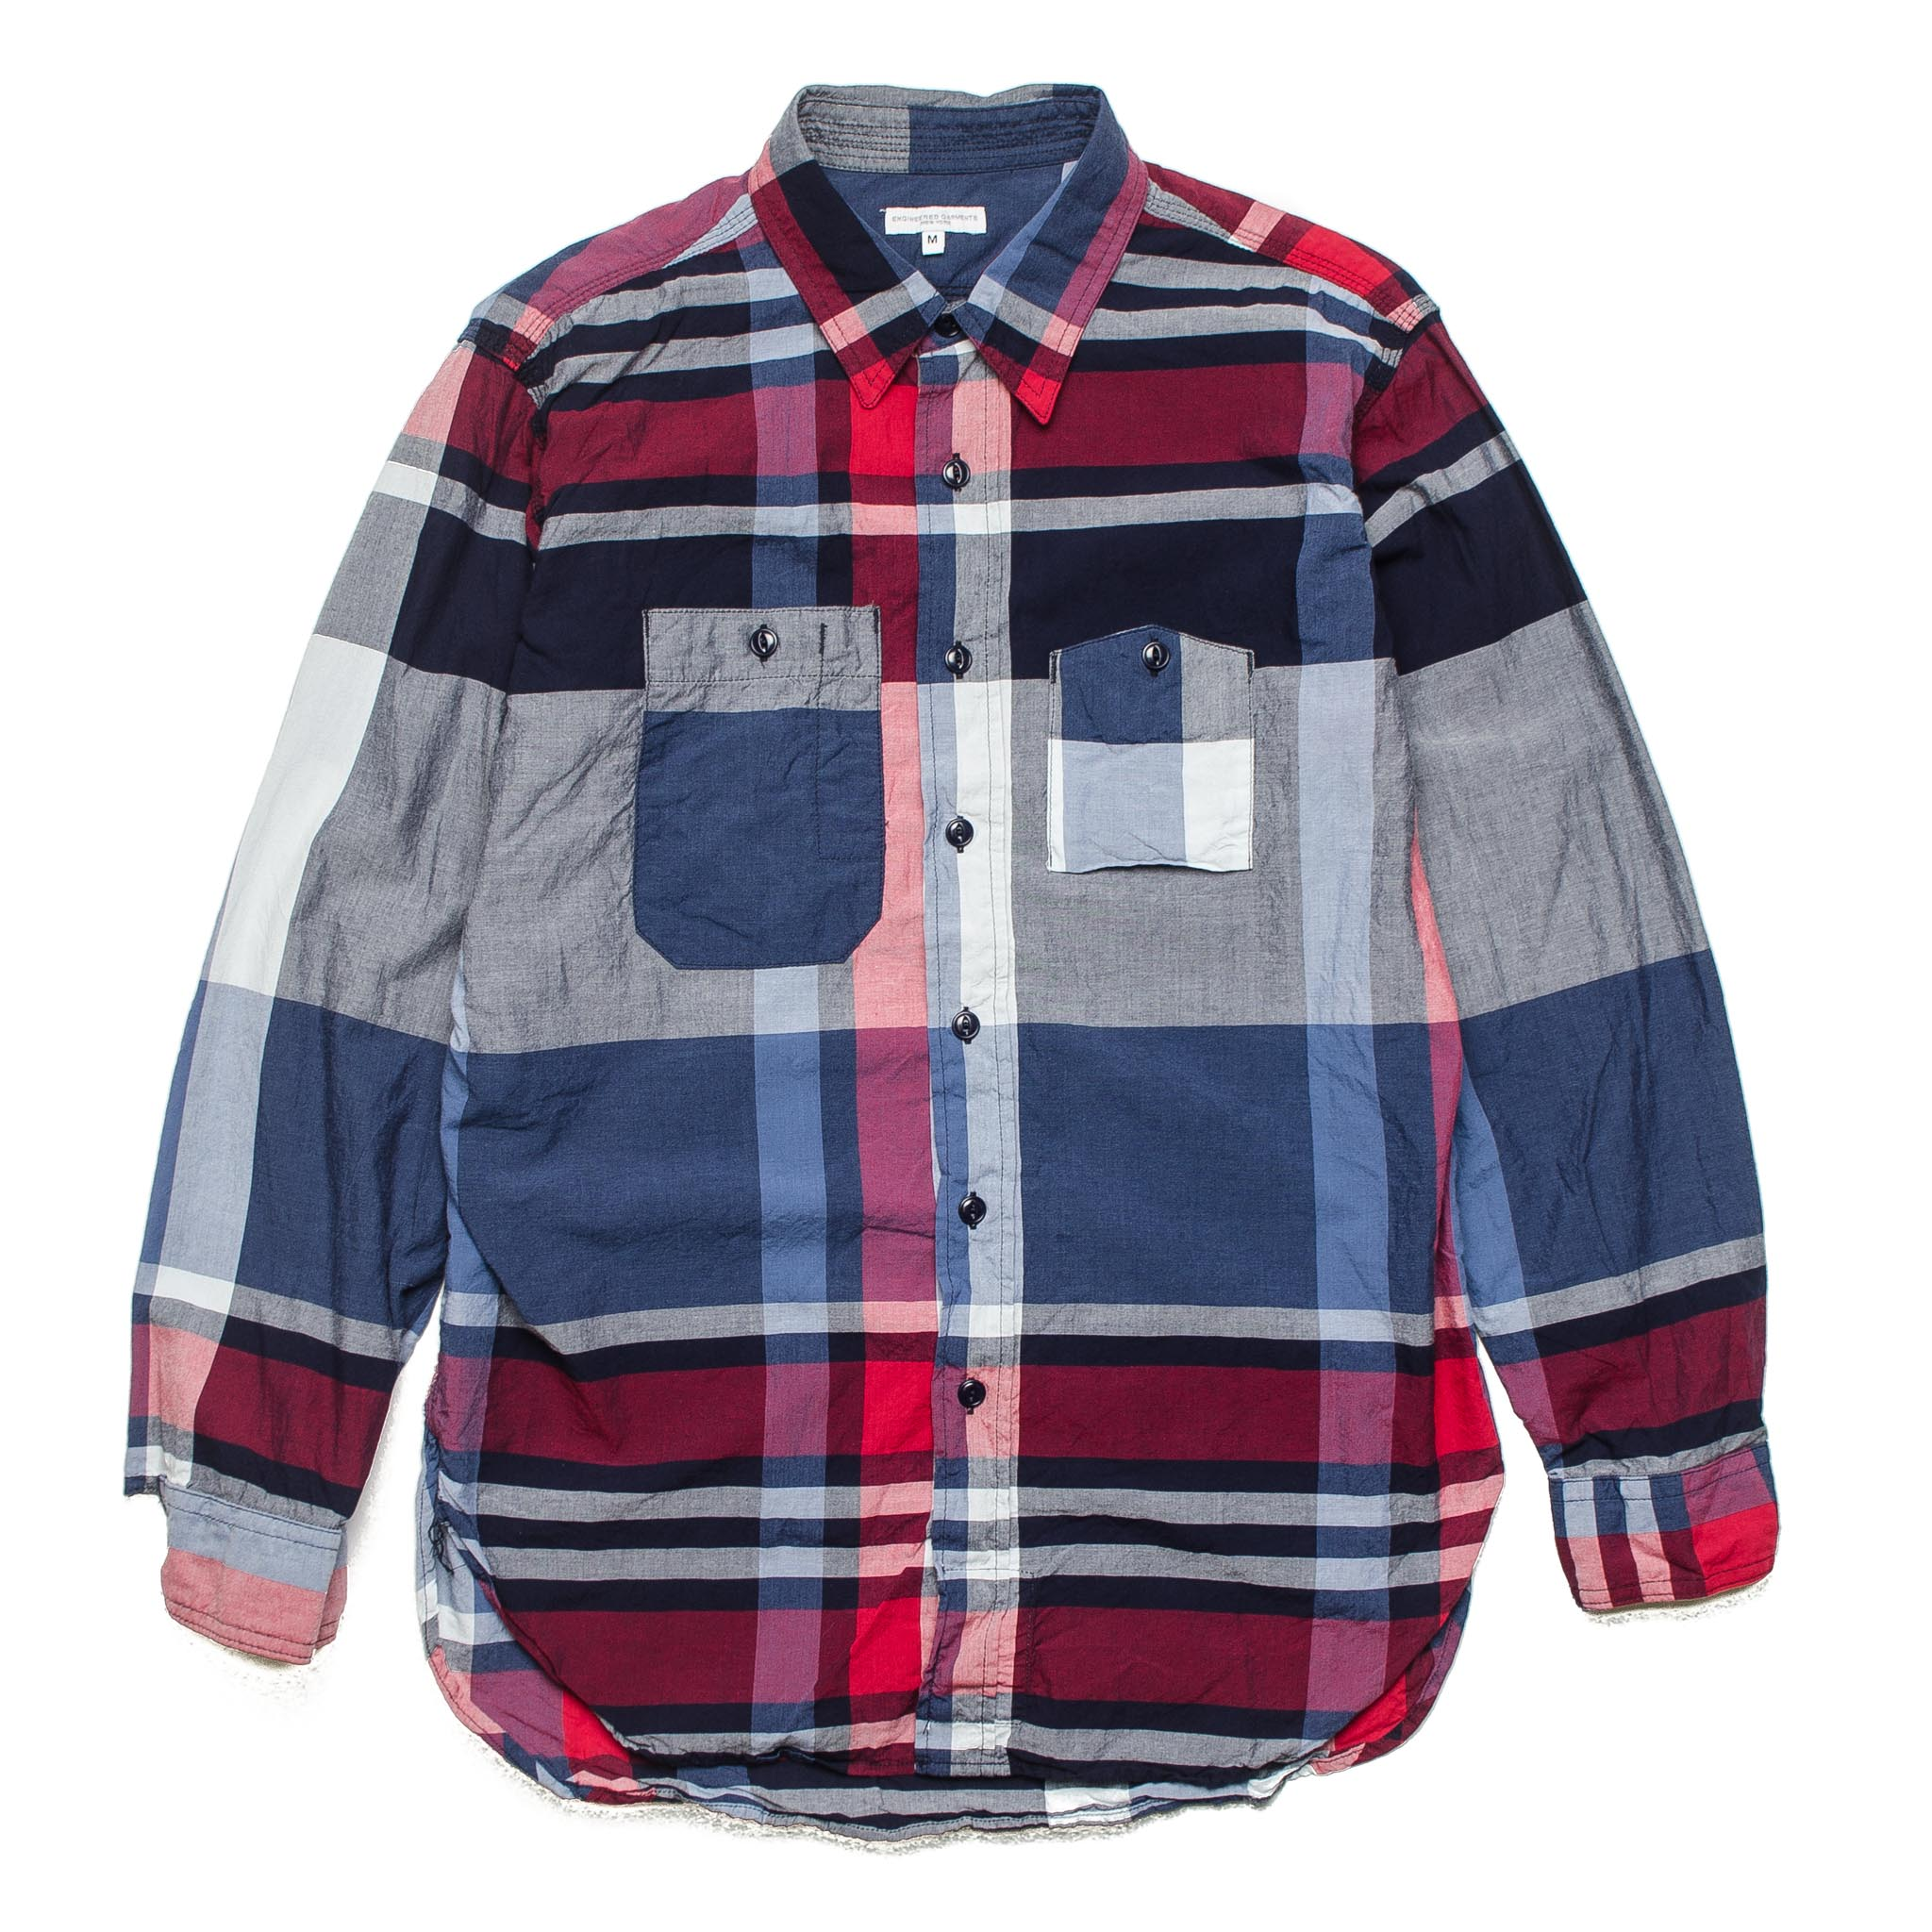 Work Shirt ES001 Big Madras Plaid Navy/Red